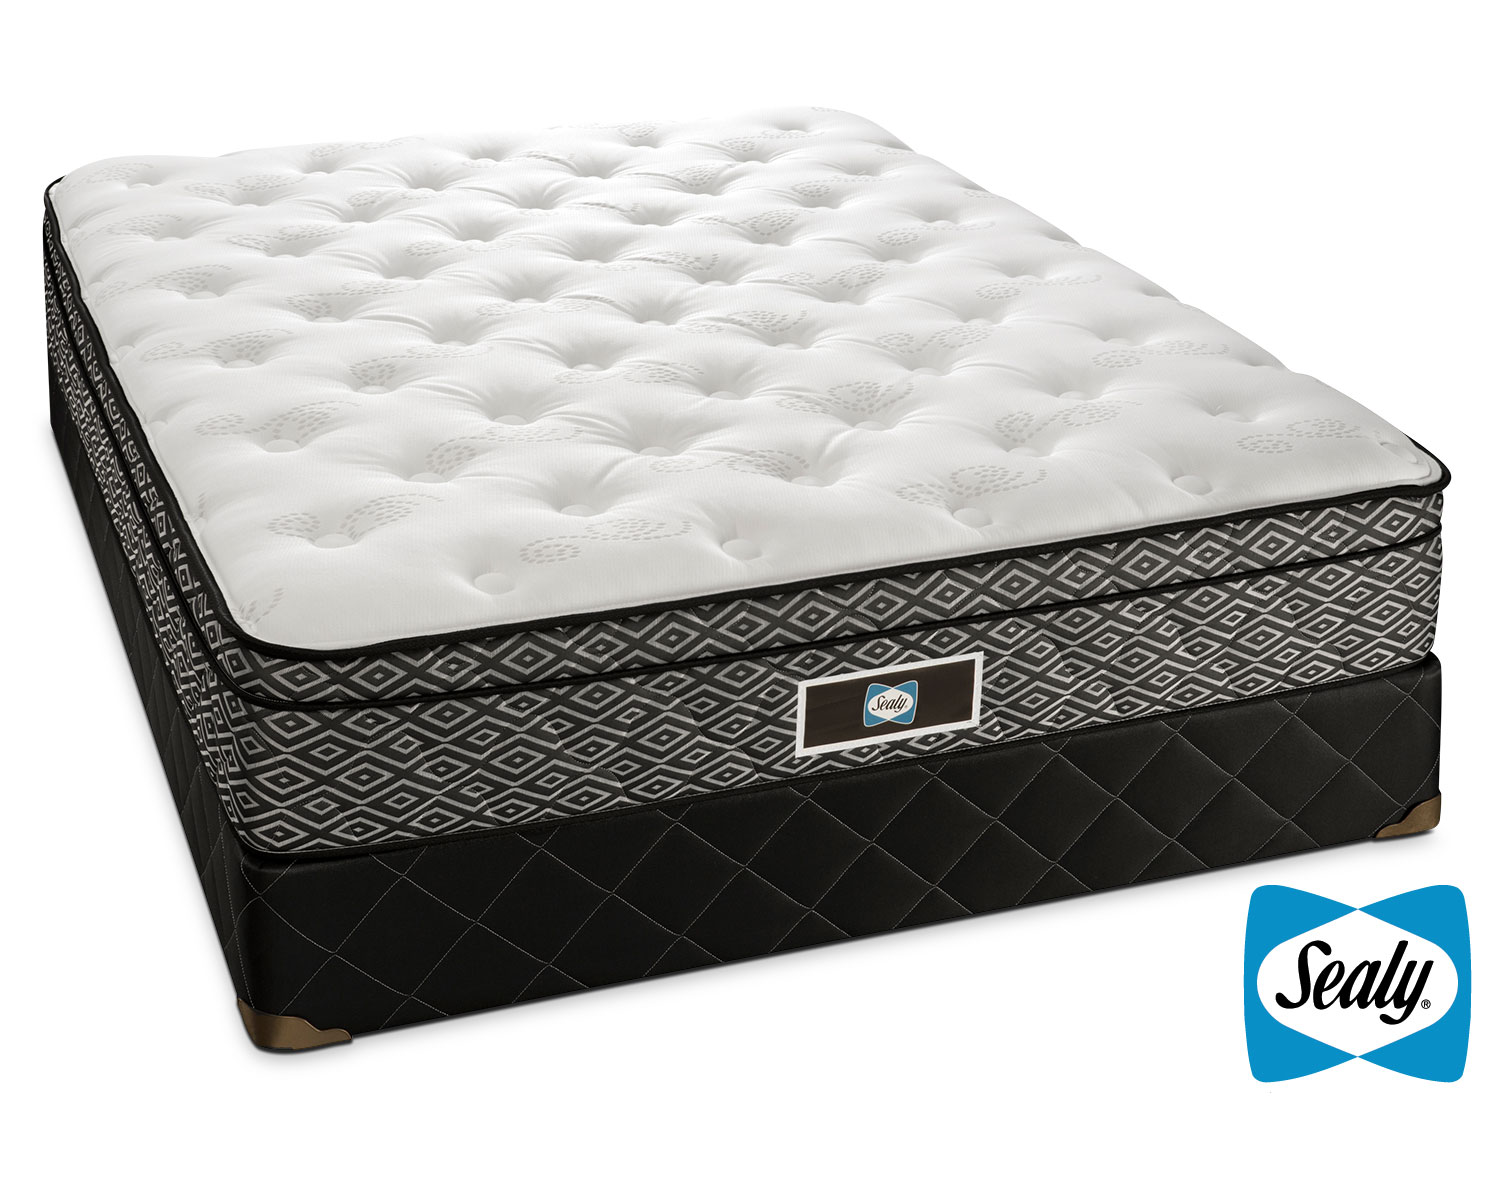 Sealy Nero Mattress Collection